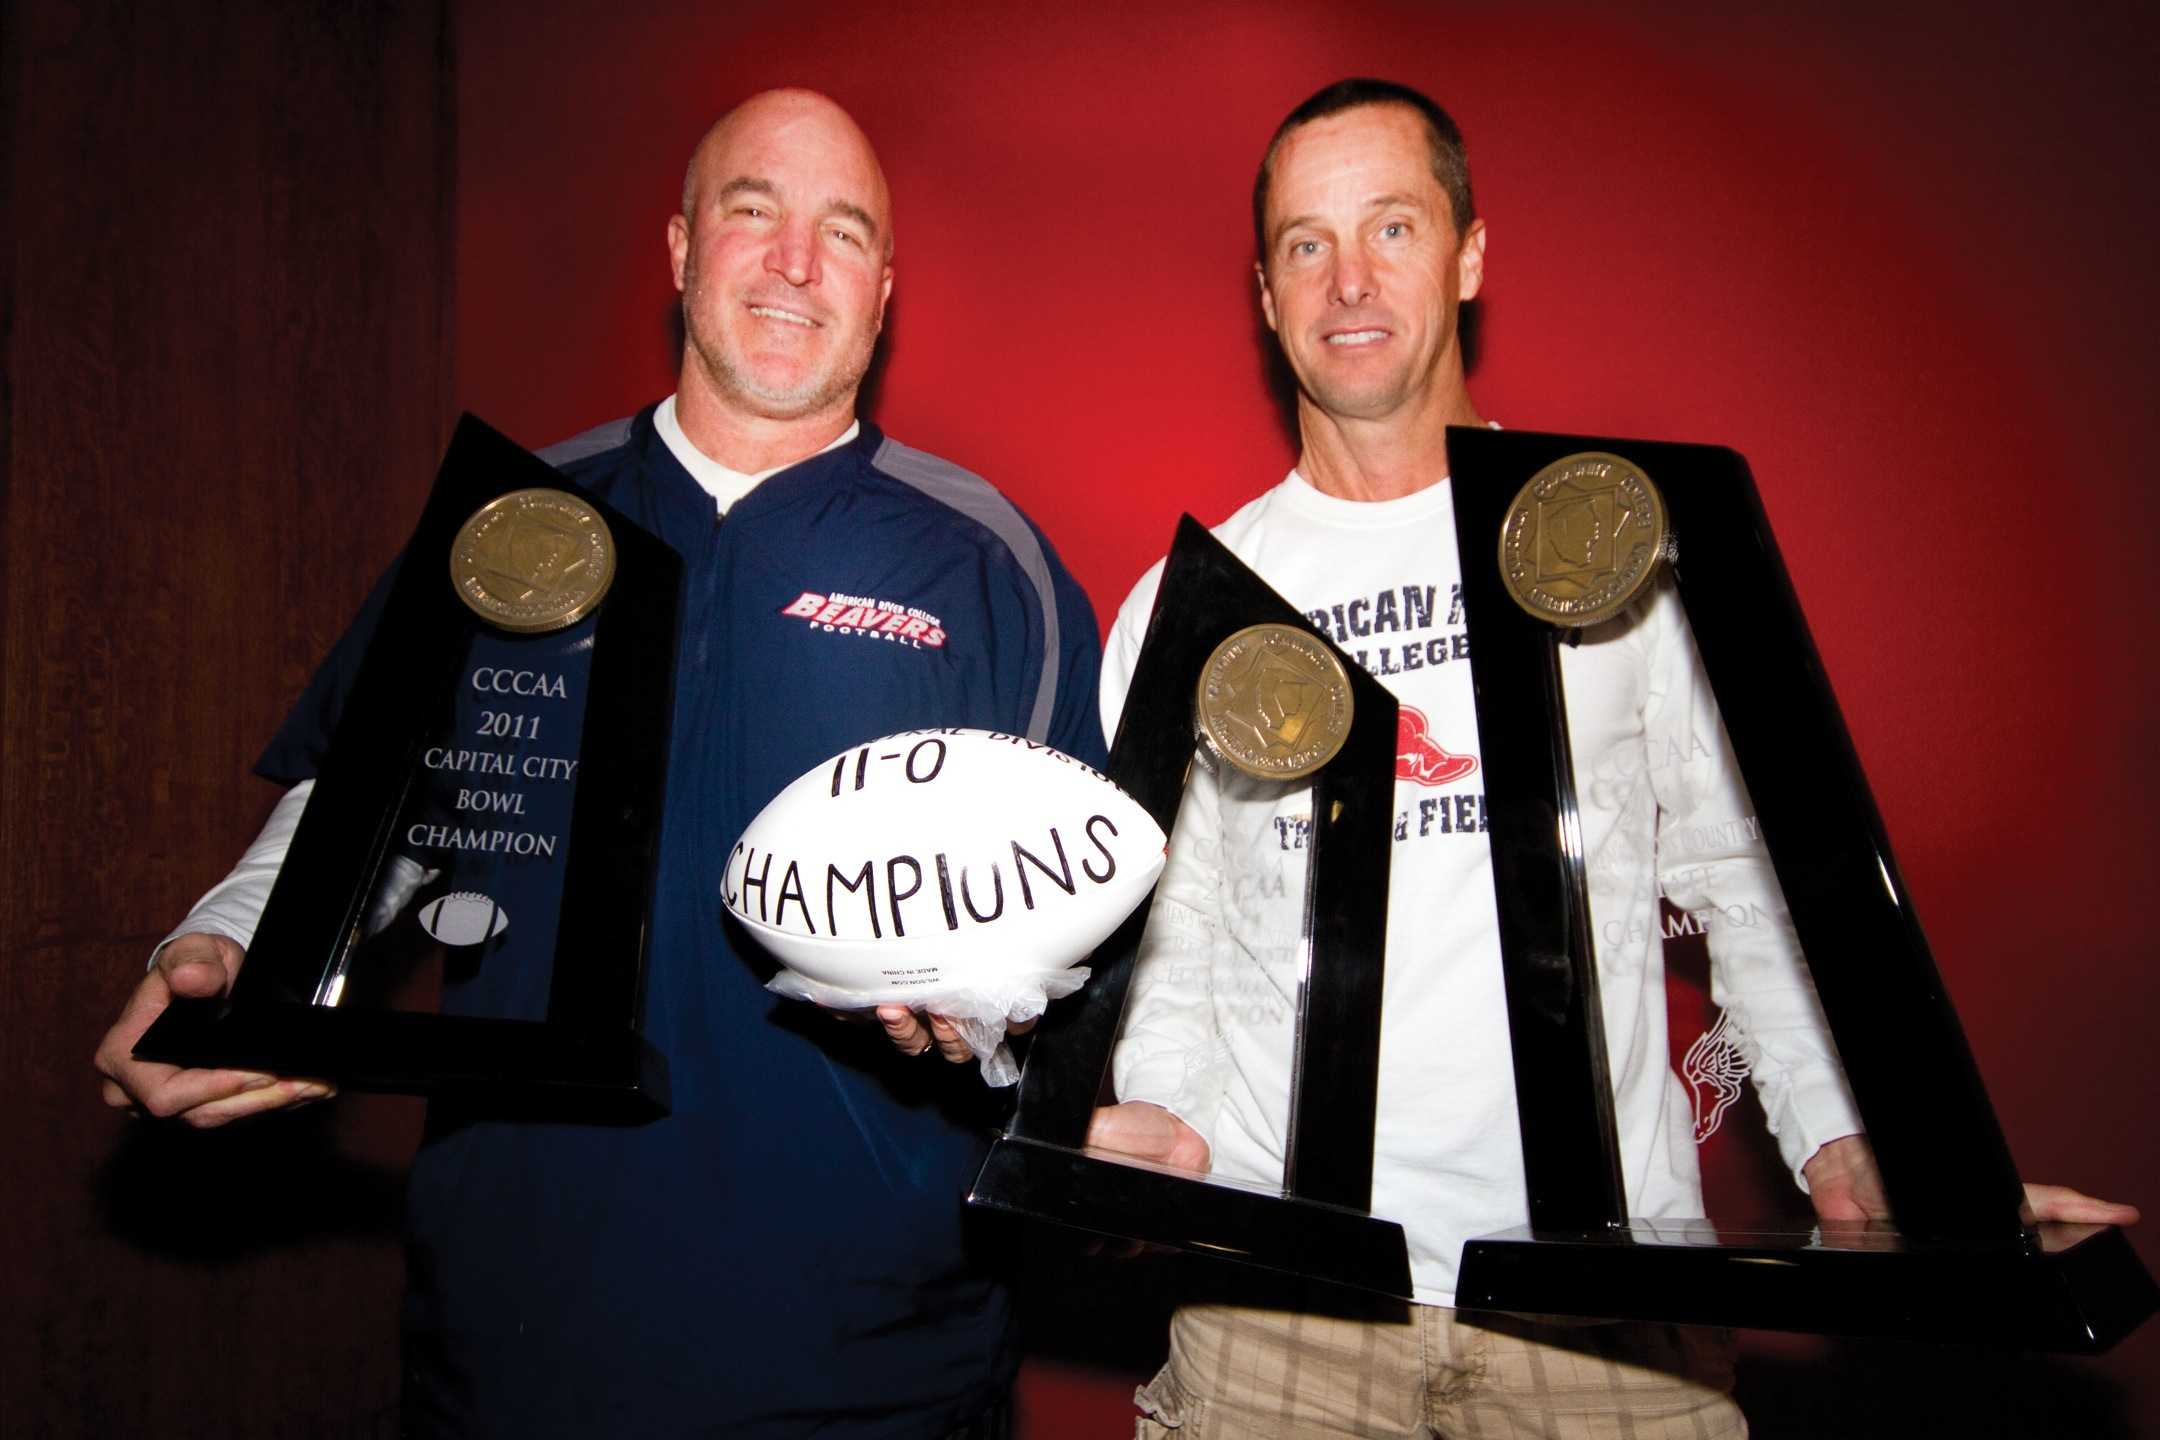 Head football coach Jerry Haflich and cross-country coach Rick Anderson. (Photo by Stephanie Lee)